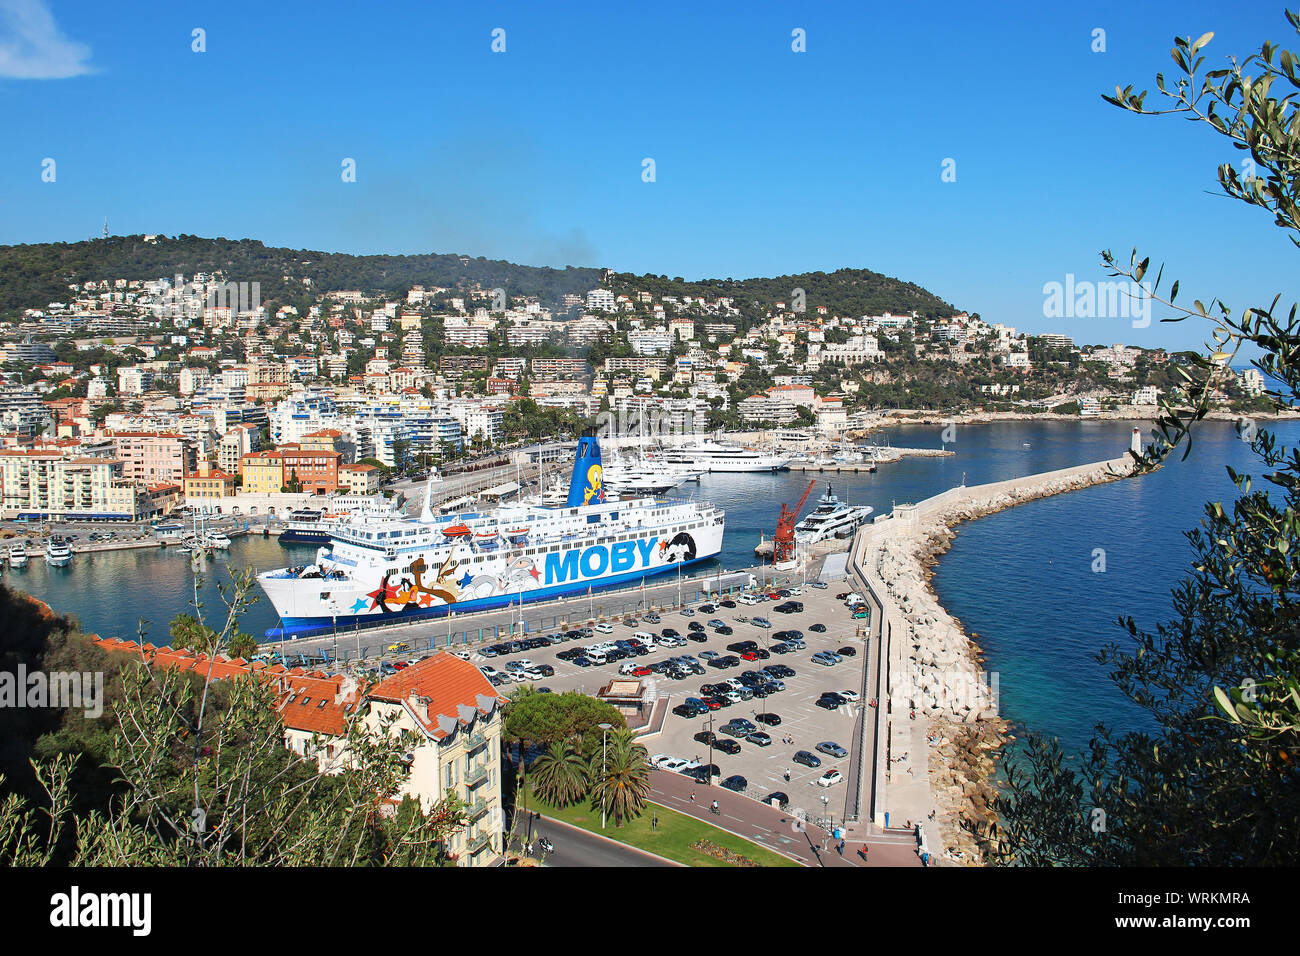 NICE, FRANCE - JUNE 23, 2016: Moby cruise ferry in the port of Nice, Cote d'Azur Stock Photo